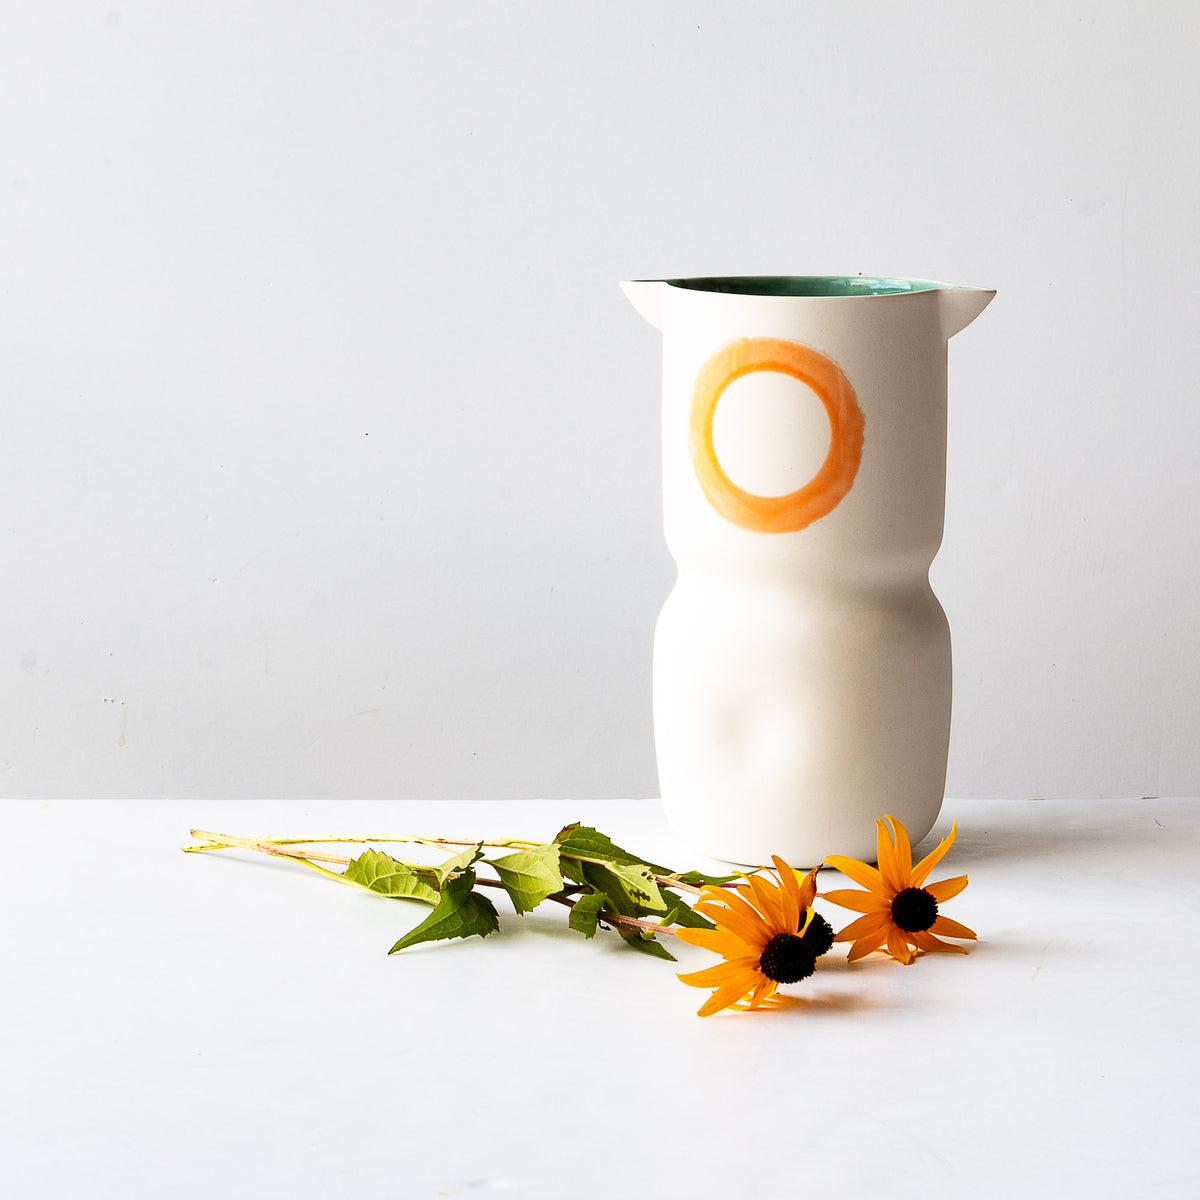 Handmade Porcelain Vase / Wine Cooler - Sold by Chic & Basta